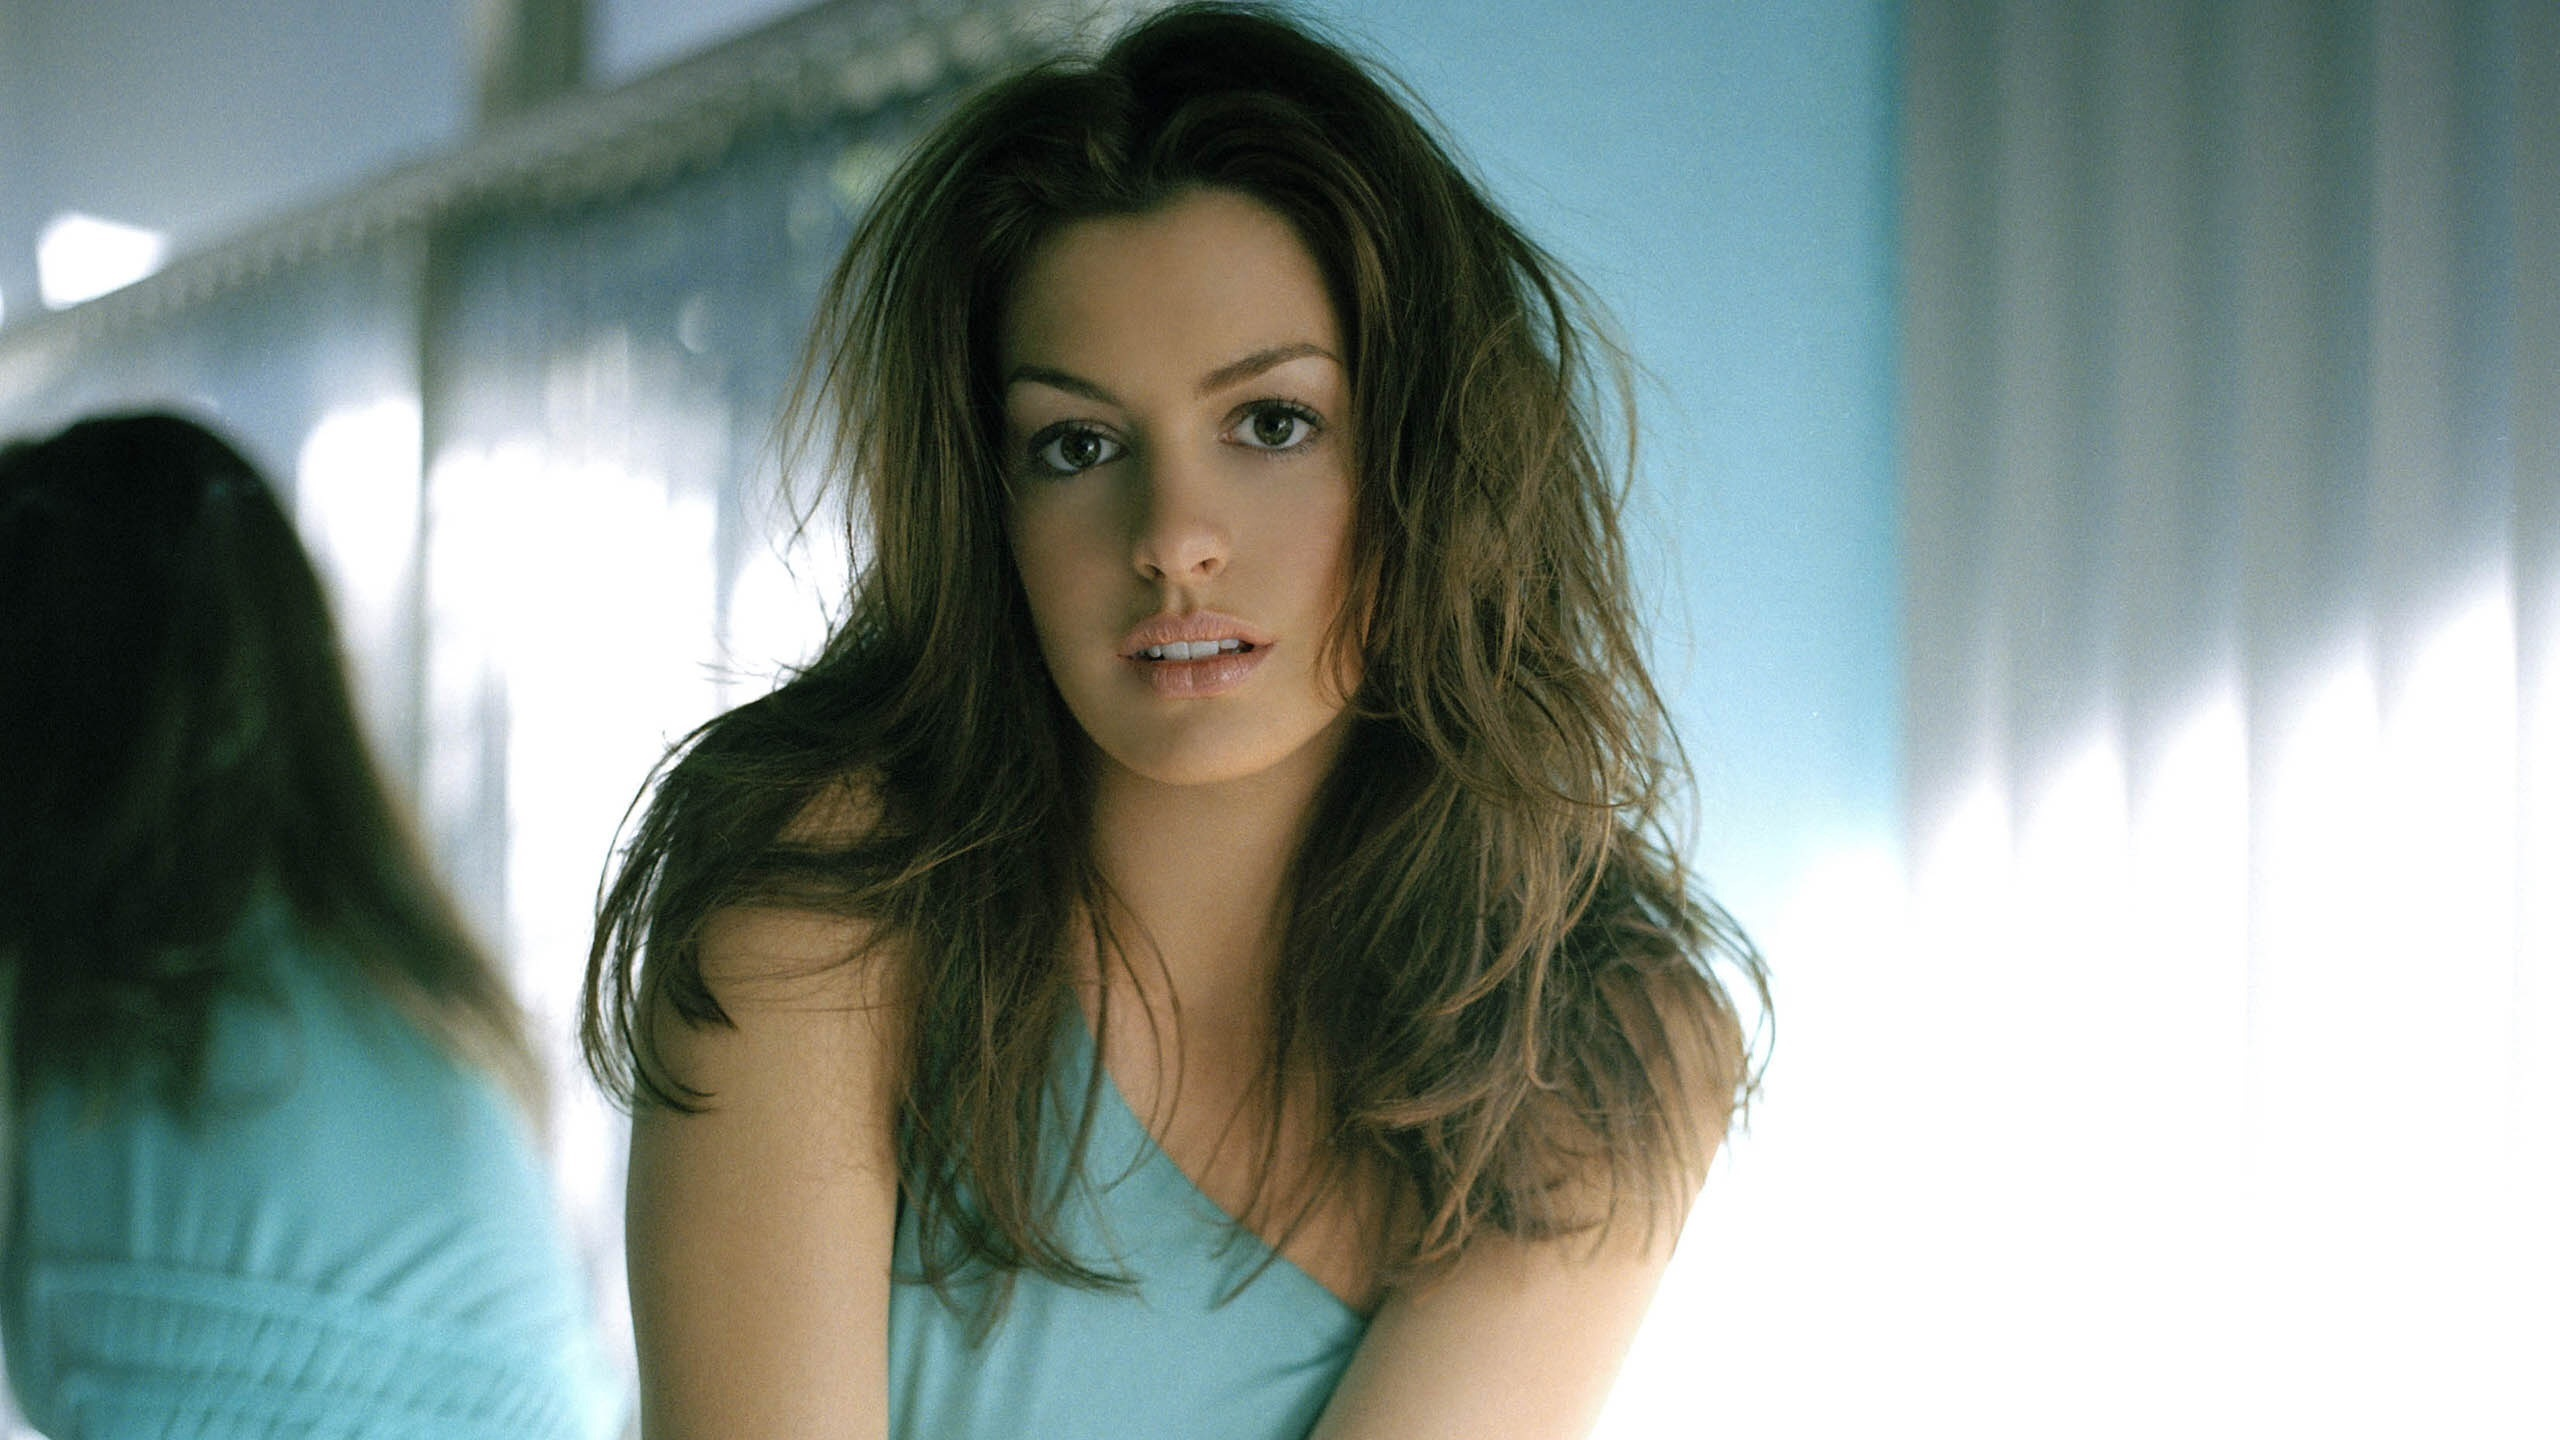 Anne Hathaway Wallpapers Images Photos Pictures Backgrounds энн хэтэуэй